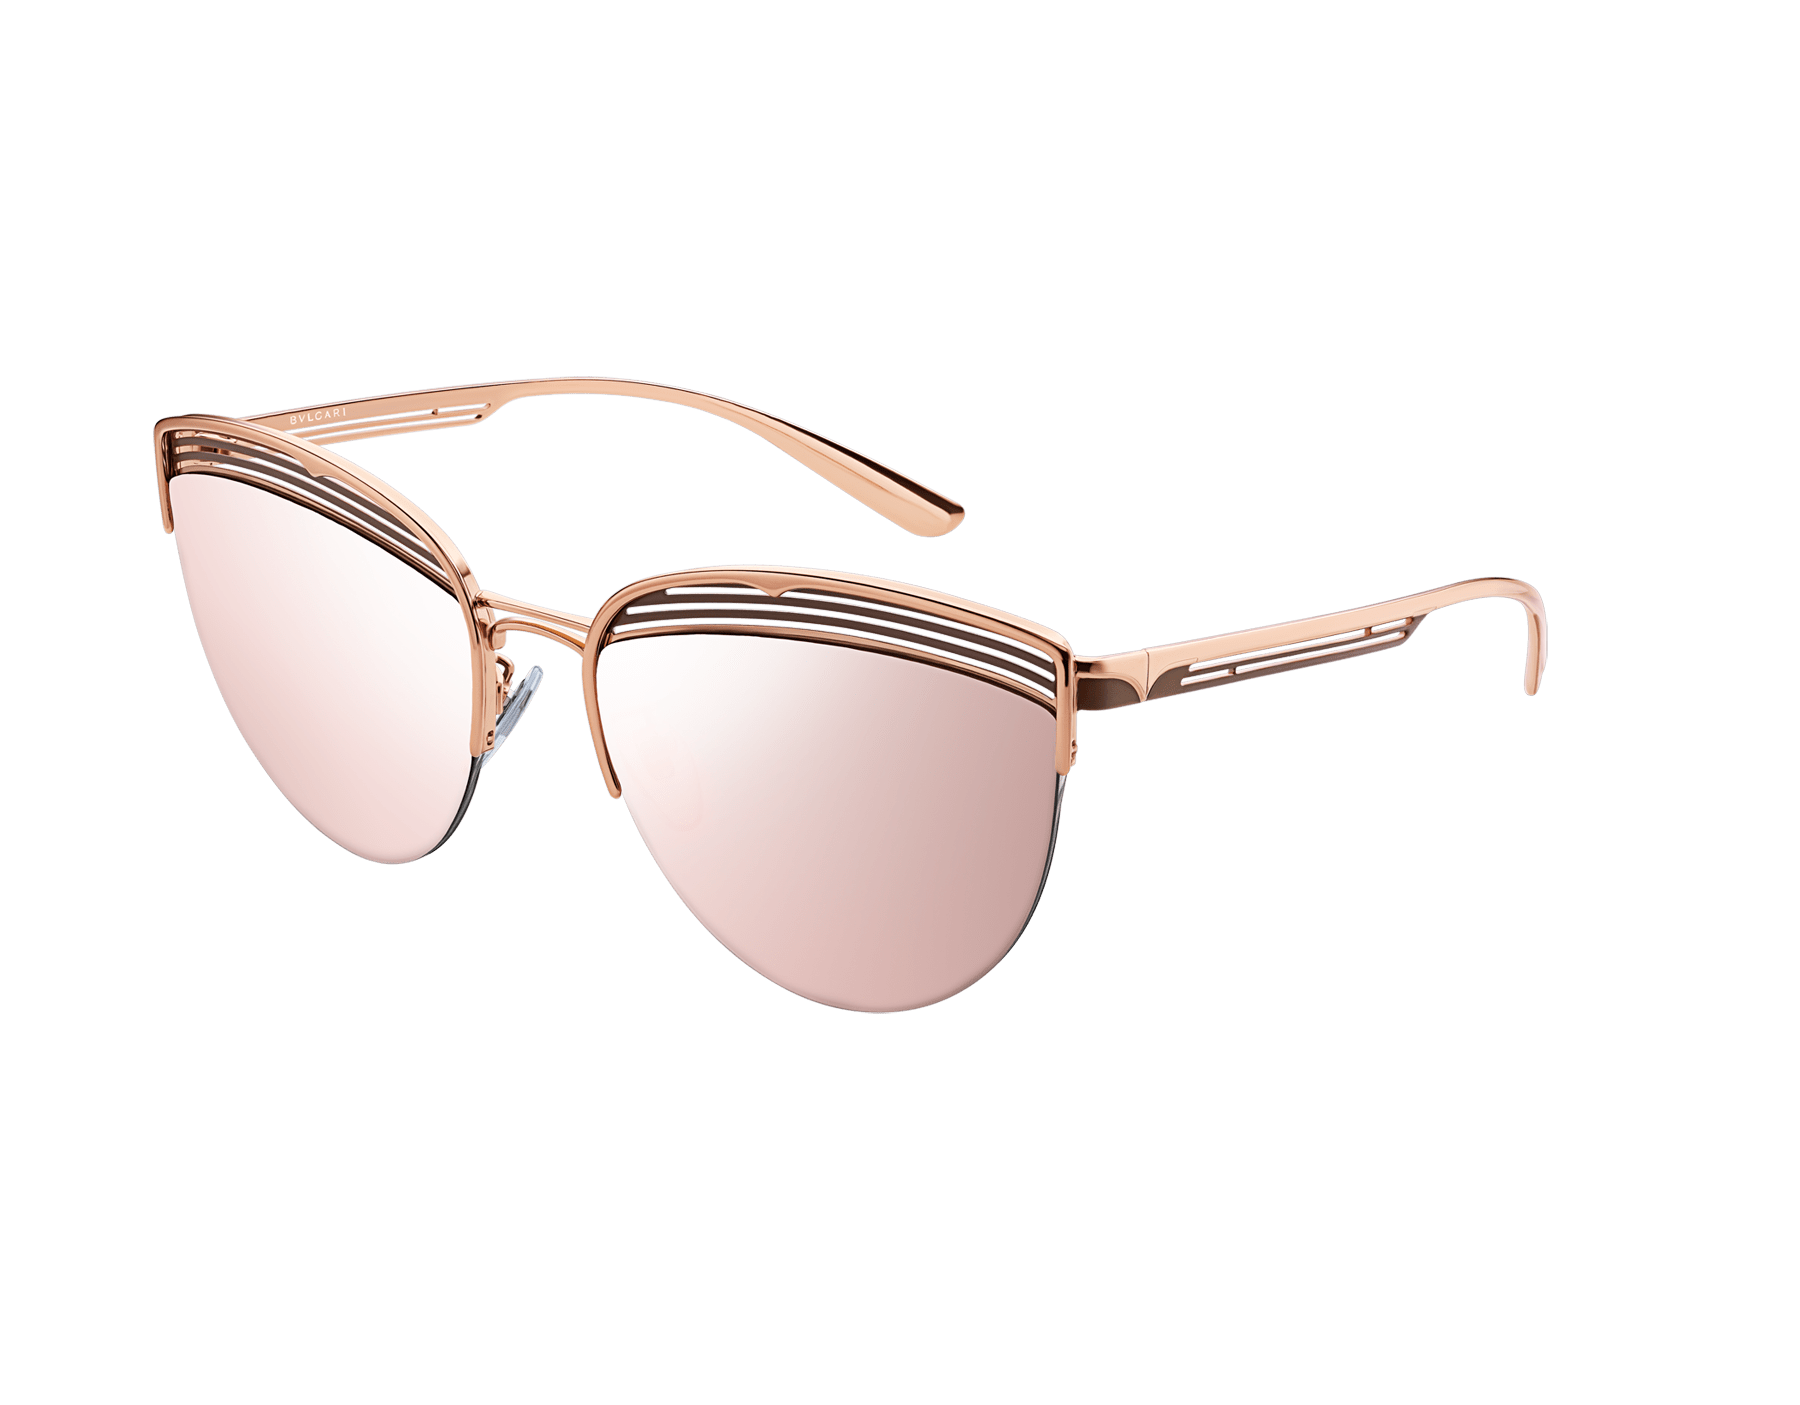 Bvlgari B.zero1 B.purevibes semi-rimless cat-eye metal sunglasses. 903717 image 1